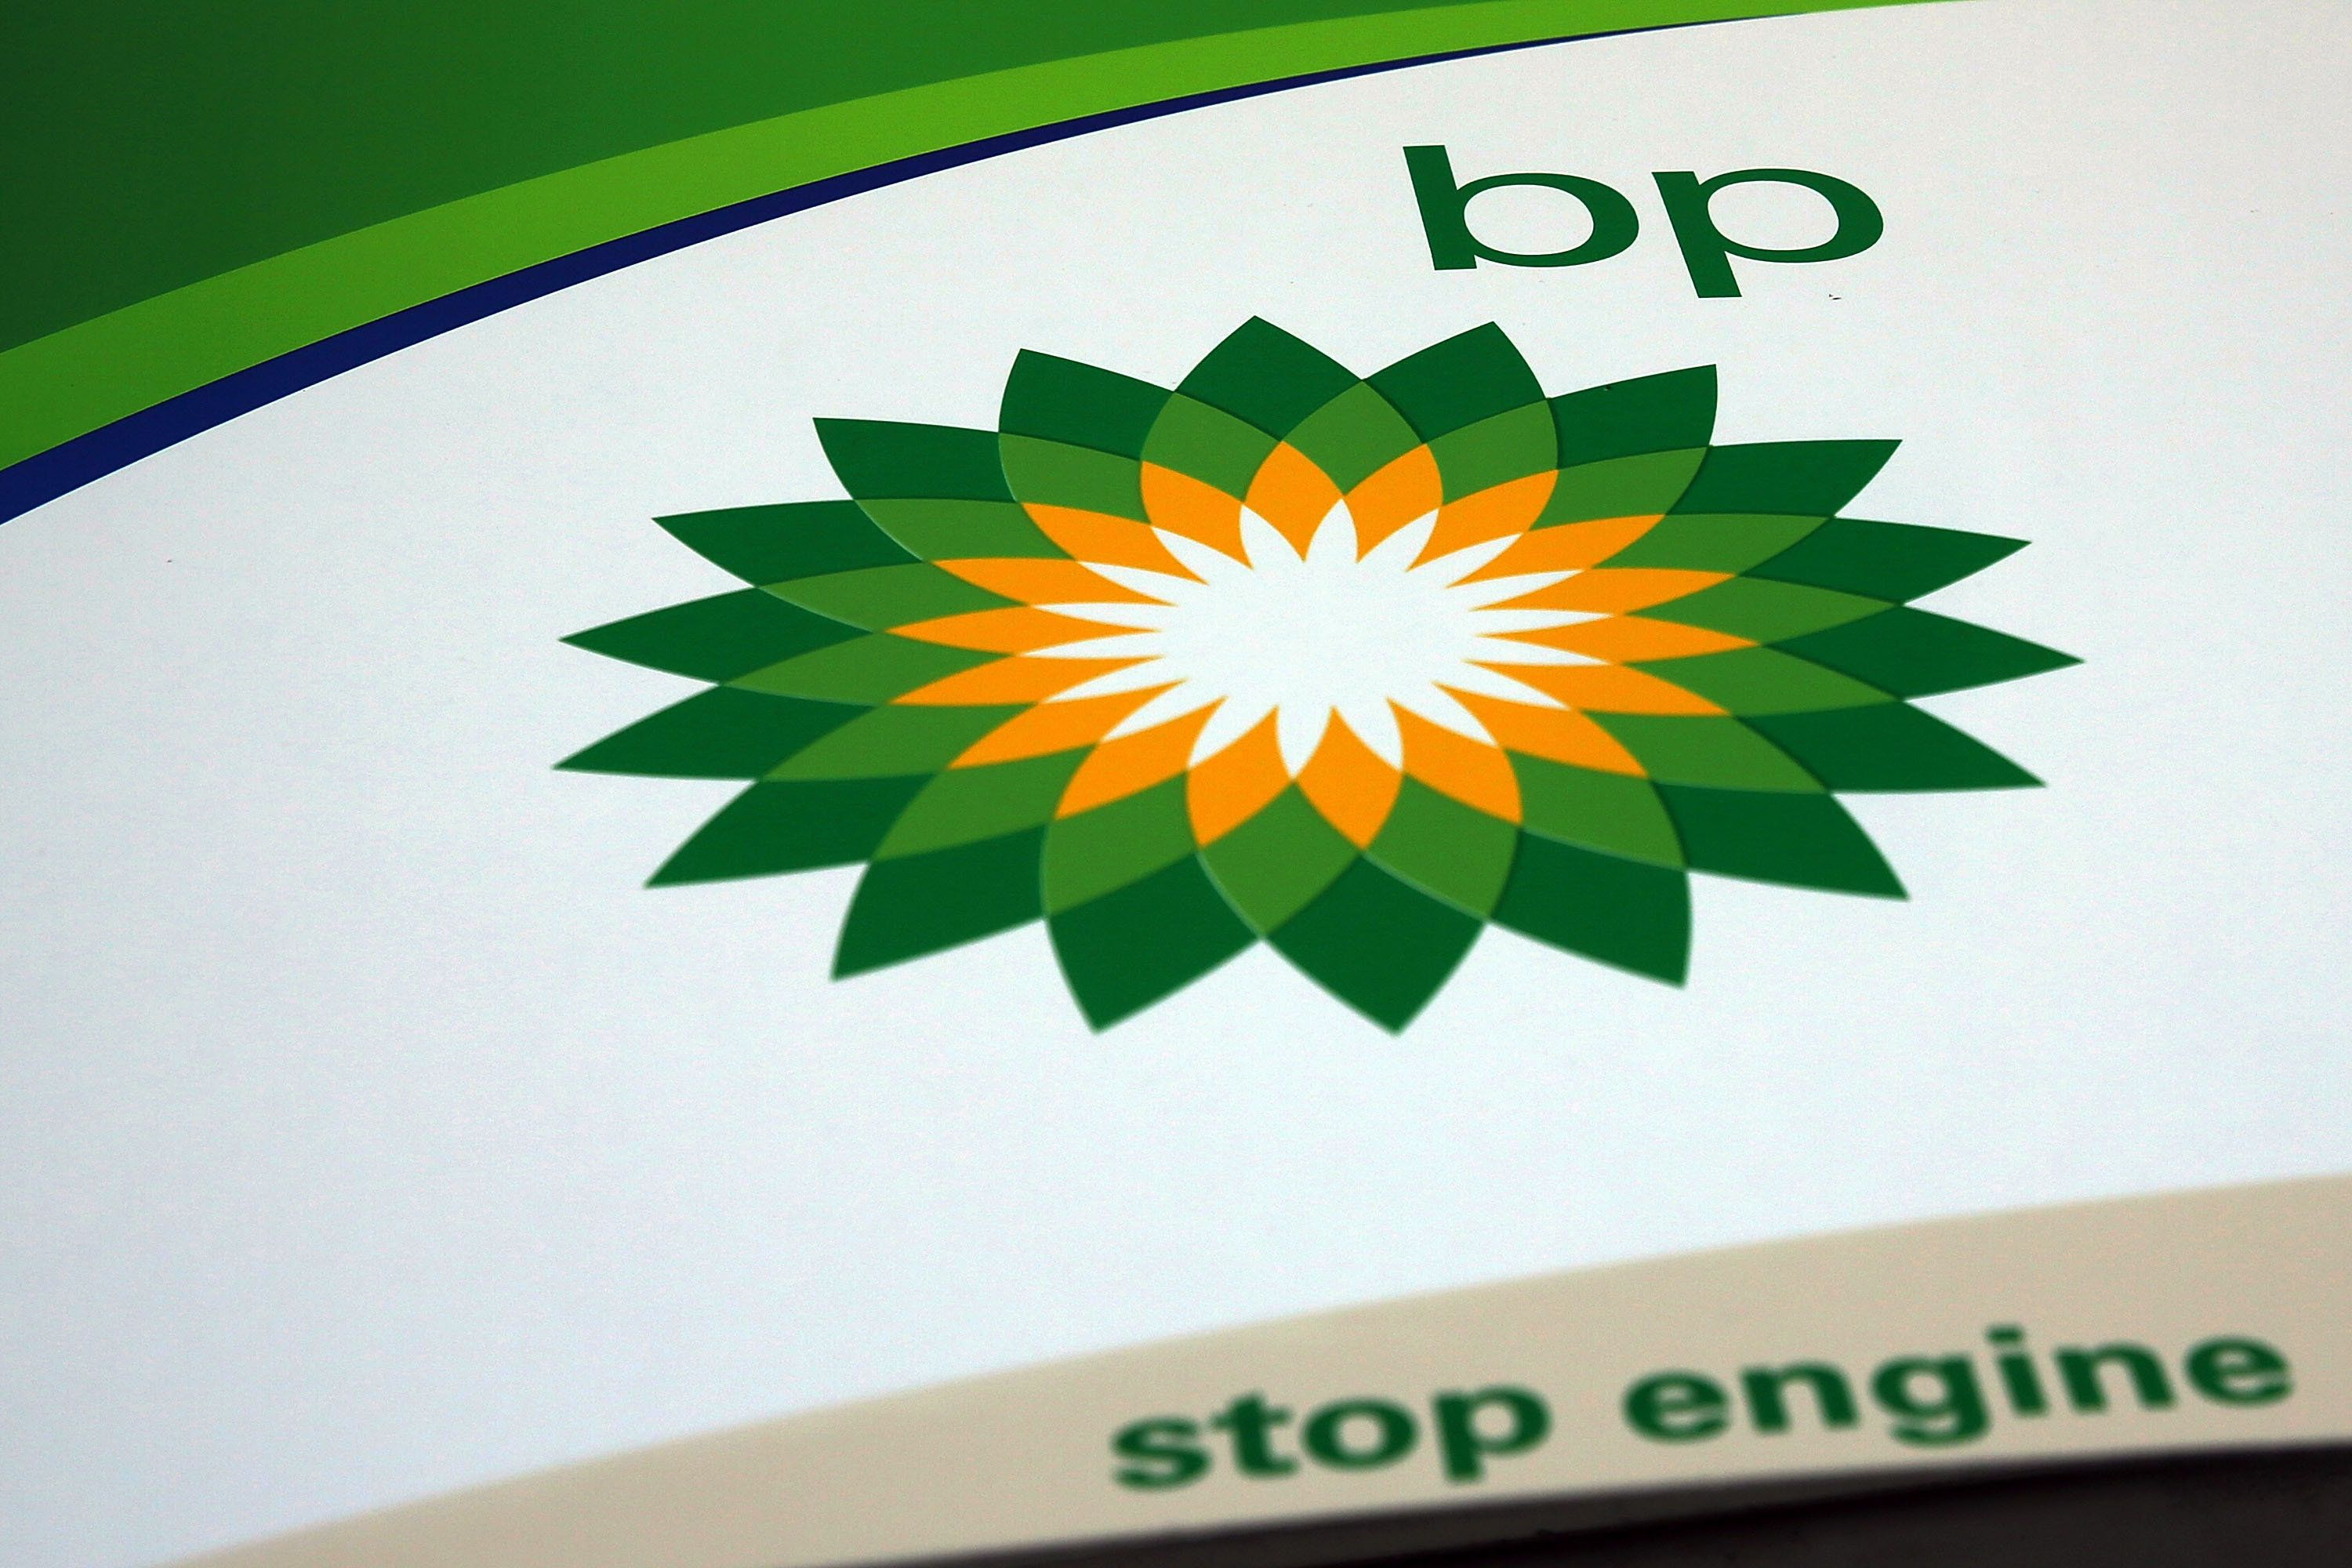 NEW YORK, NY - FEBRUARY 02: A BP sign is viewed at a gas station in Brooklyn on February 2, 2016 in New York City.  The oil industry giant reported on Tuesday a $3.3 billion fourth-quarter loss as oil prices continue to fall globally.  (Photo by Spencer Platt/Getty Images)